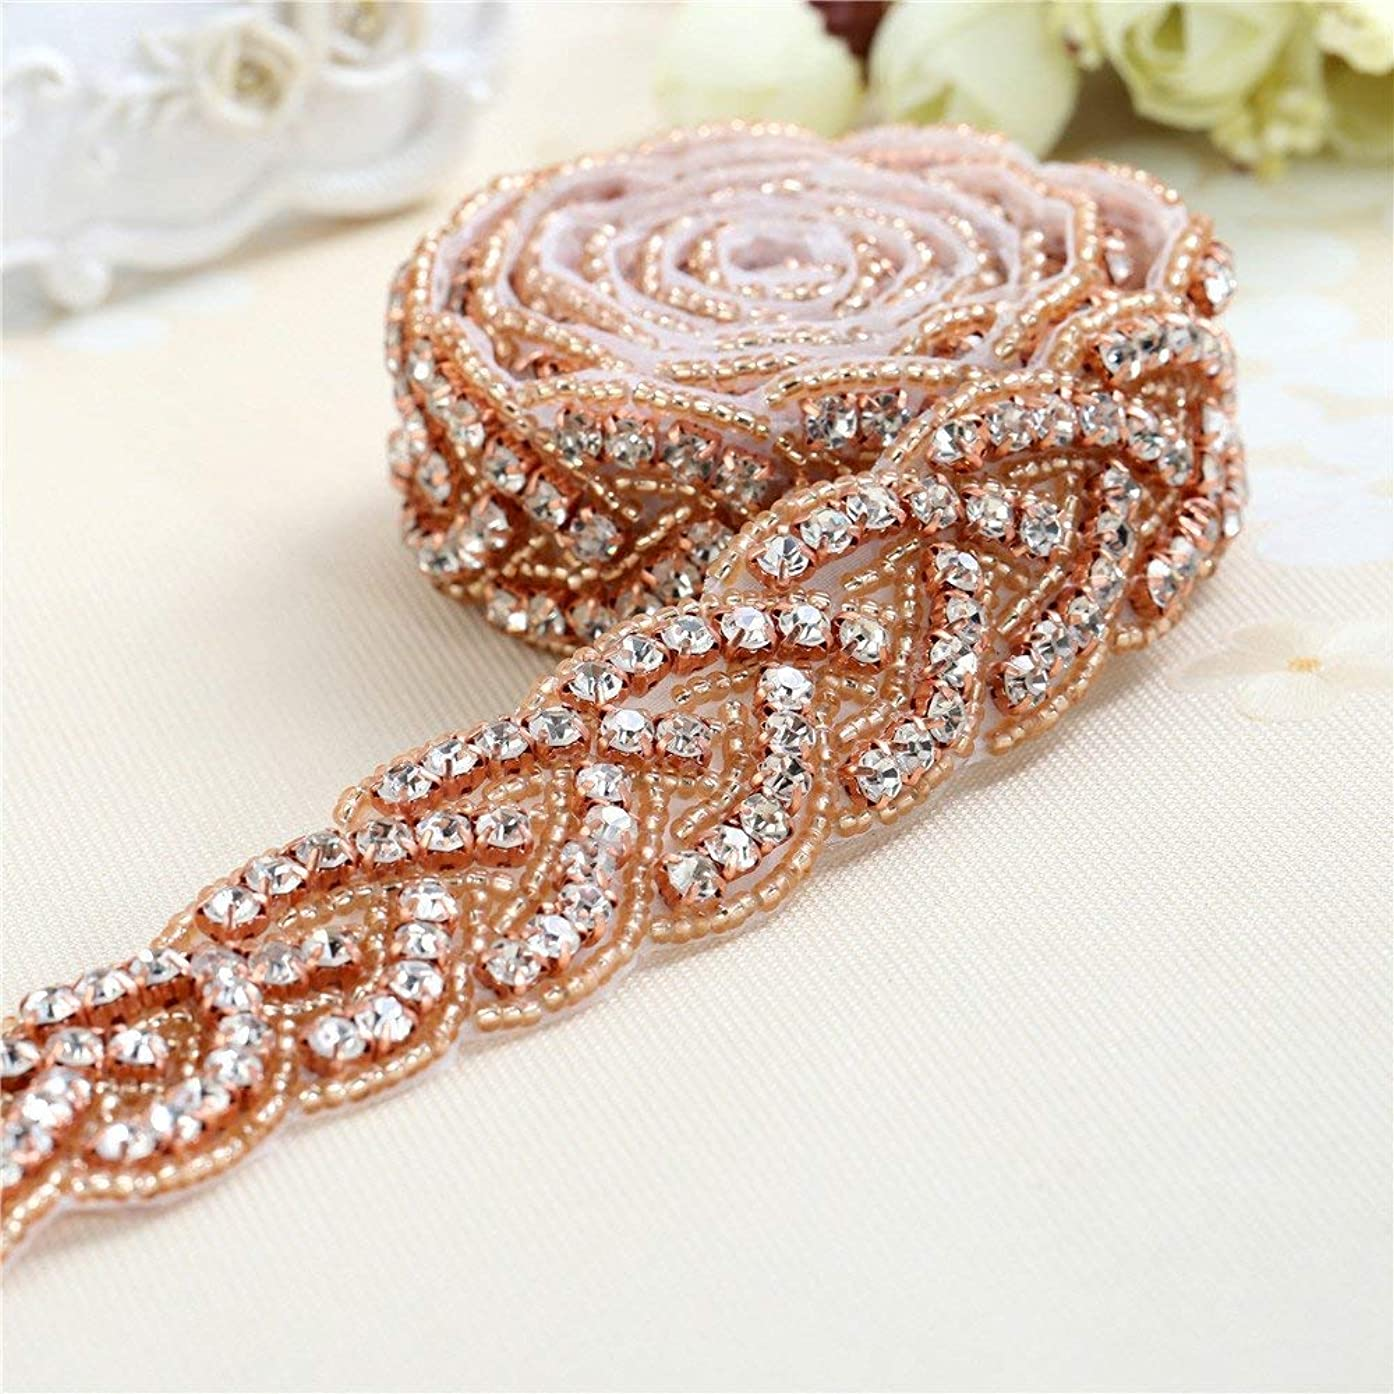 "Rose Gold Bridal Gown Sash Rhinestone Applique DIY Wedding Belt by Sewing or Ironing on -1 Piece(1""36""in)"